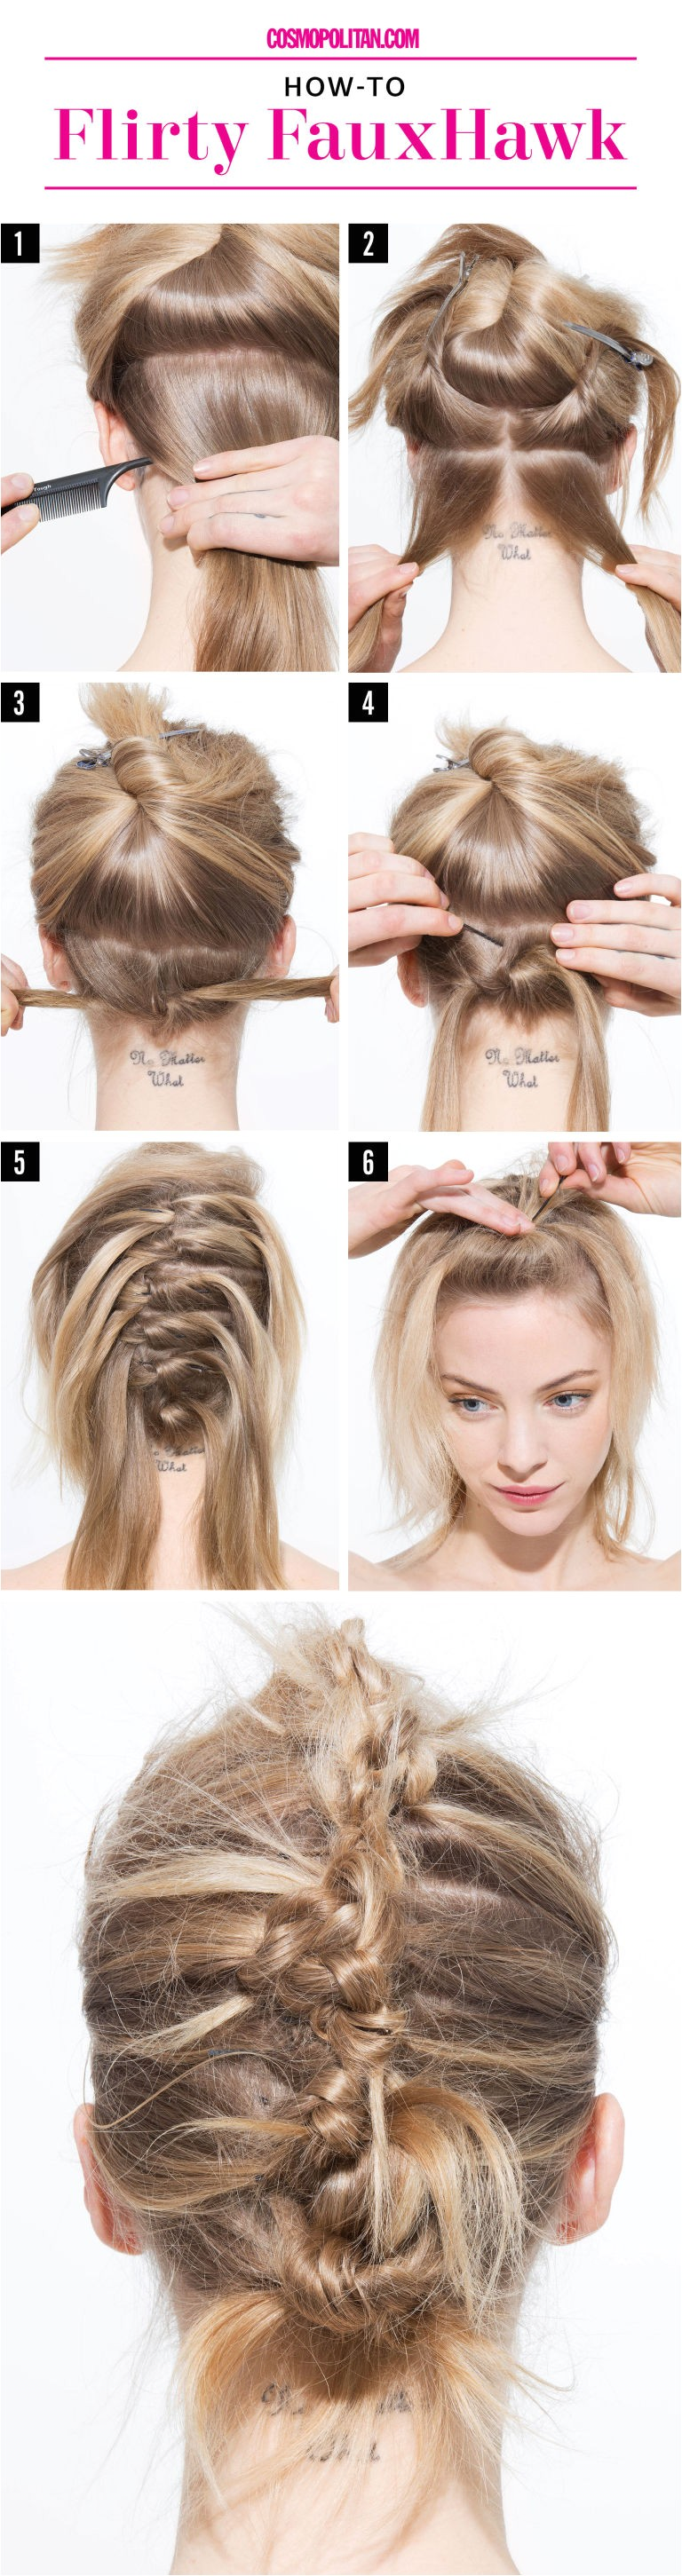 In need of a last minute prom evening formal hairstyle and don t want the cookie cutter updo your stylist might serve up